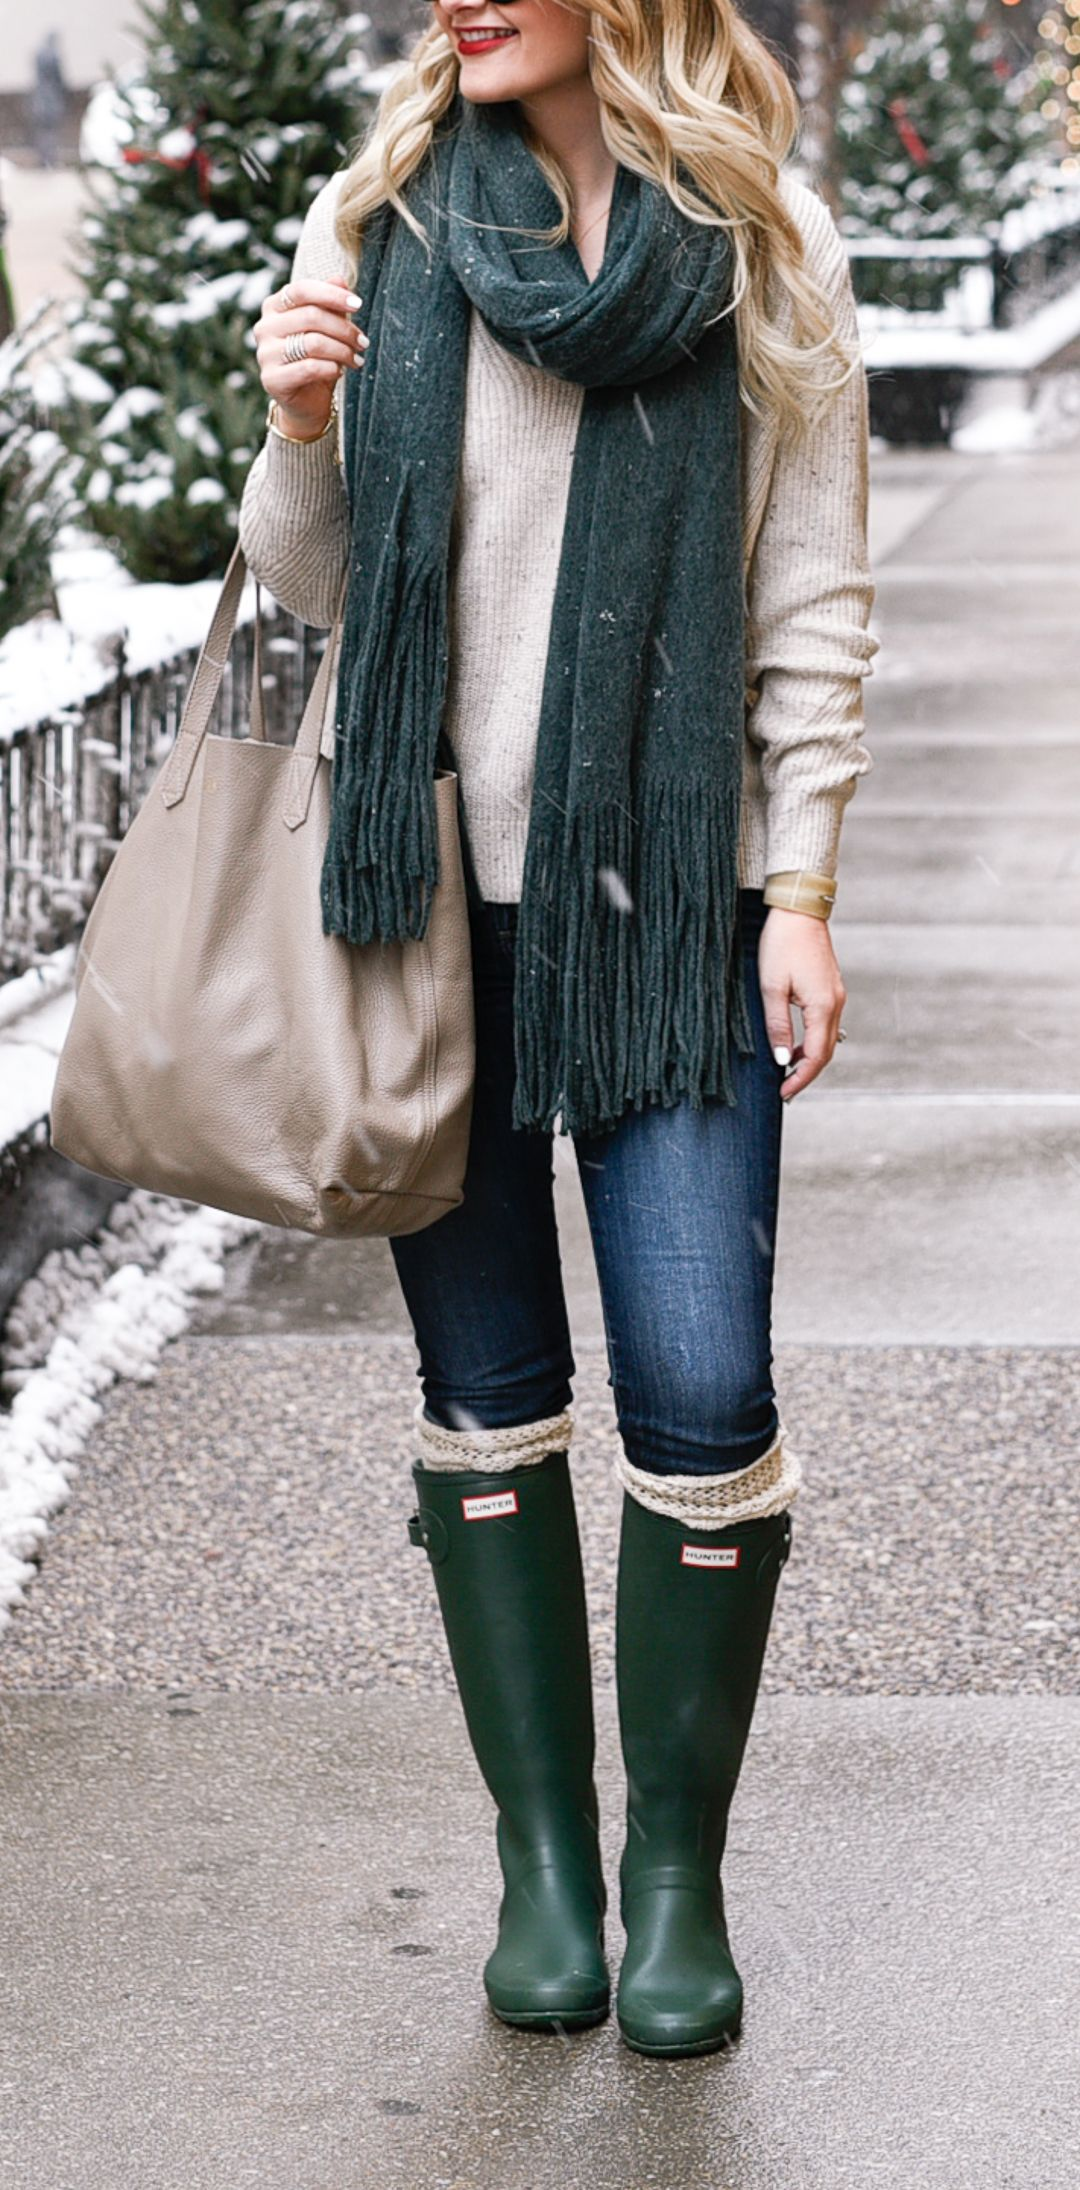 Pave Jewelry and a Cozy Winter Outfit | Pinterest | Botas Lluvia y Invierno